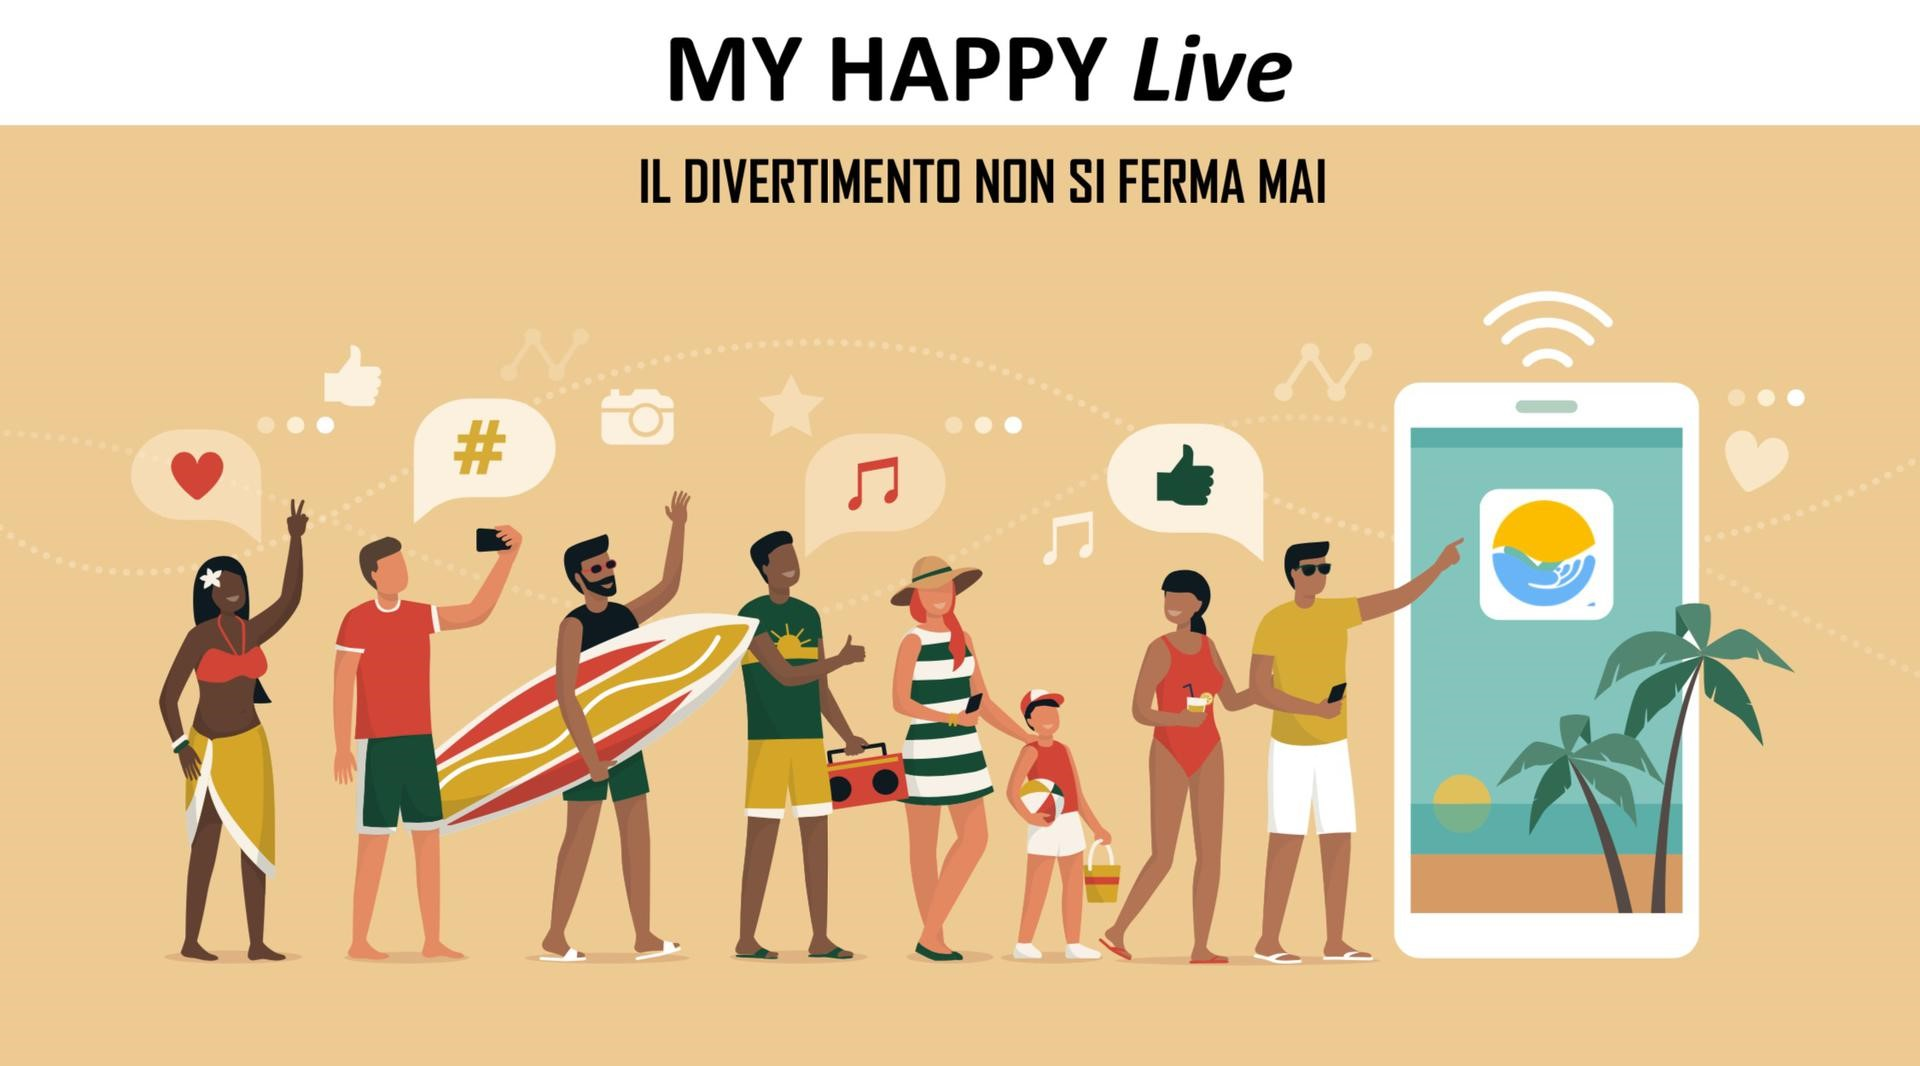 My Happy Live